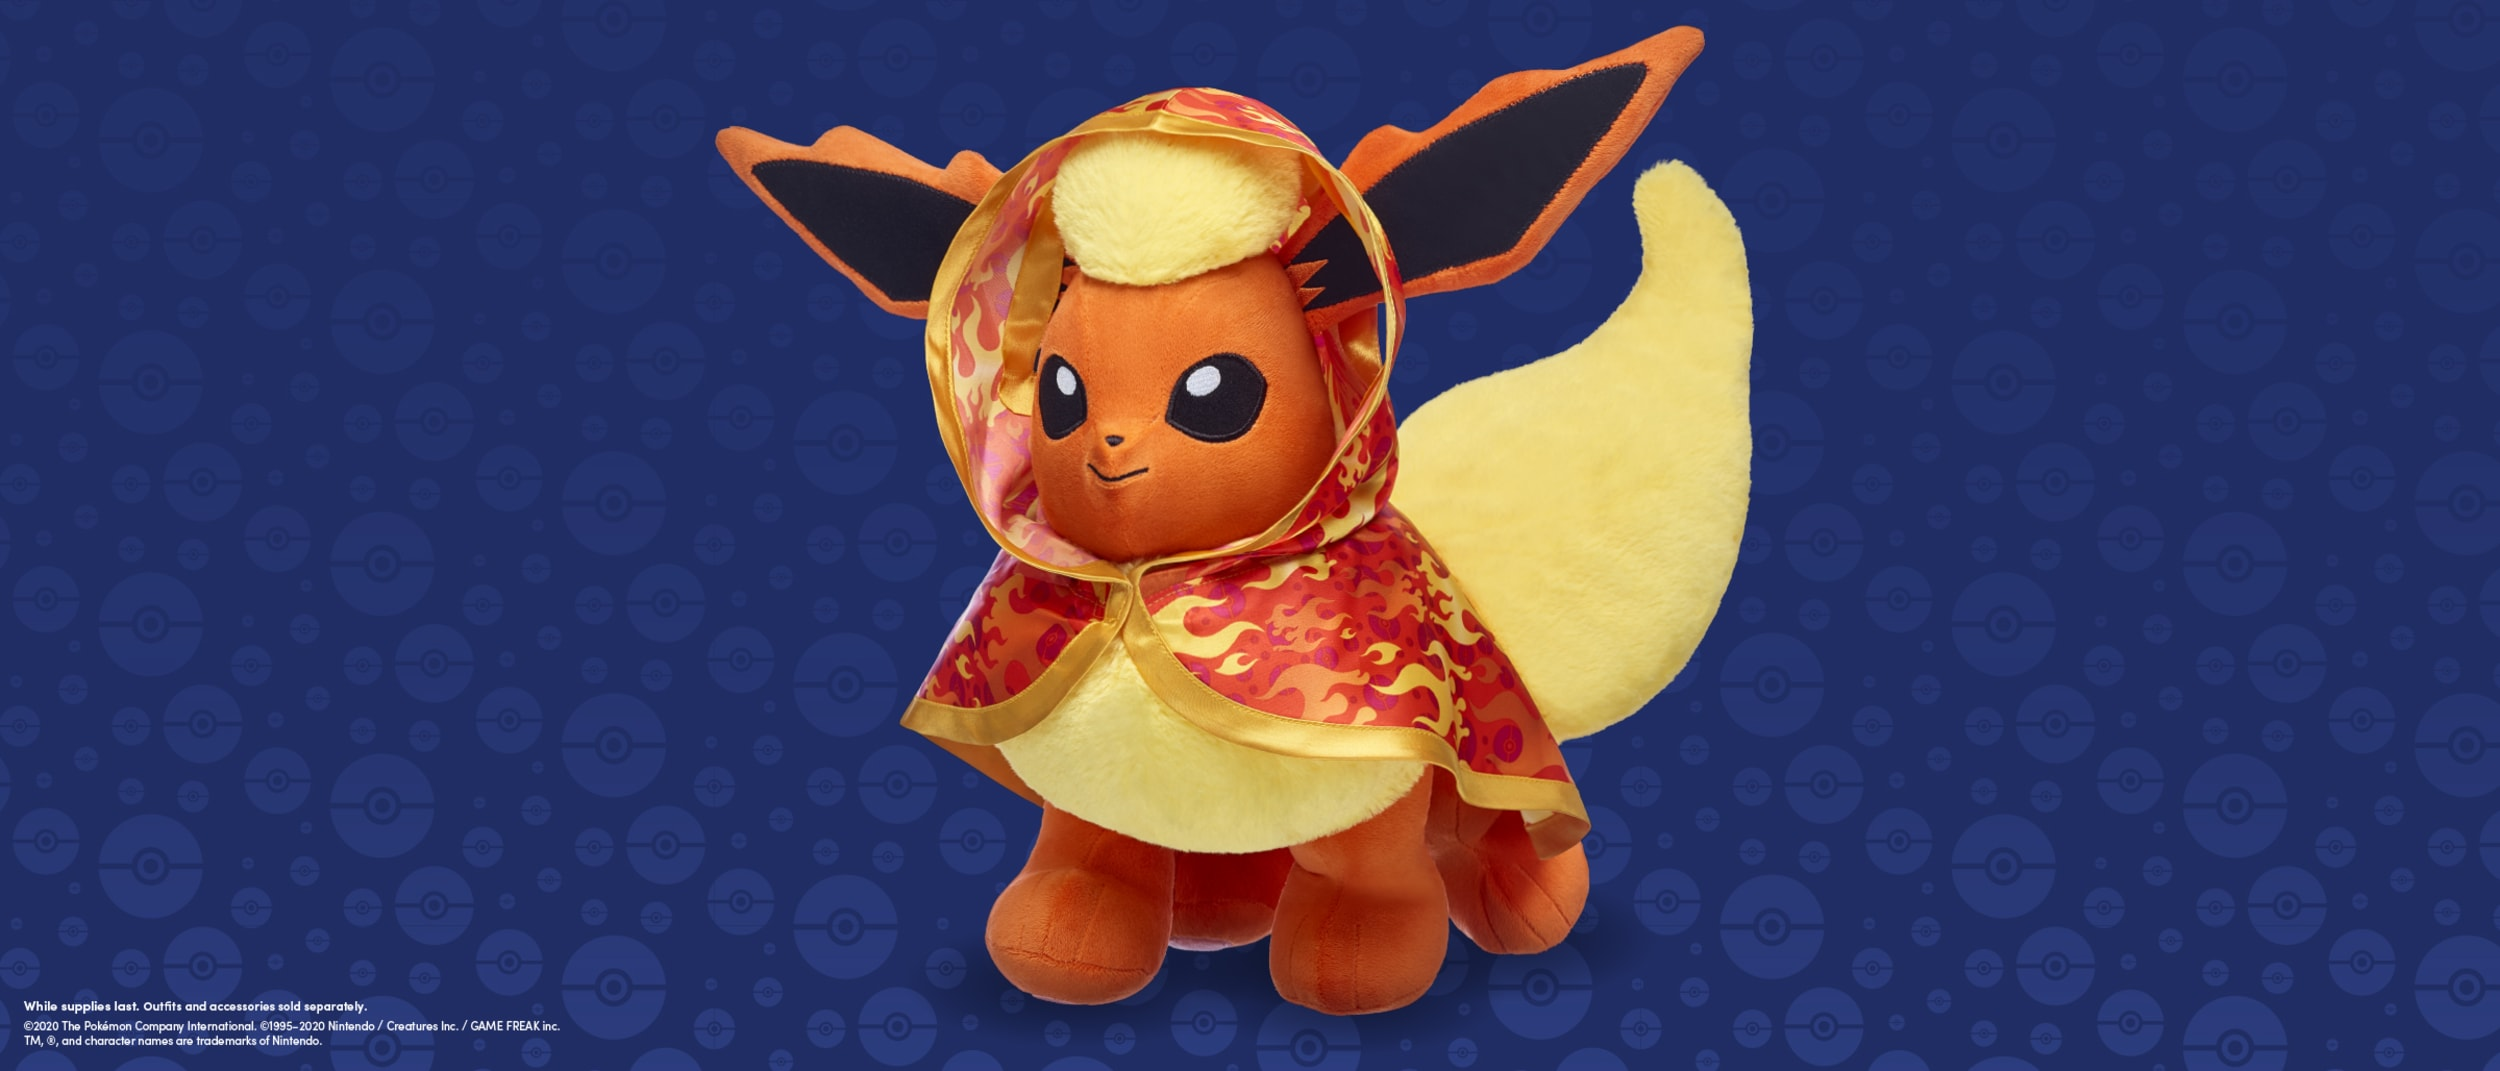 Pokemon Flareon has arrived at Build-A-Bear Workshop